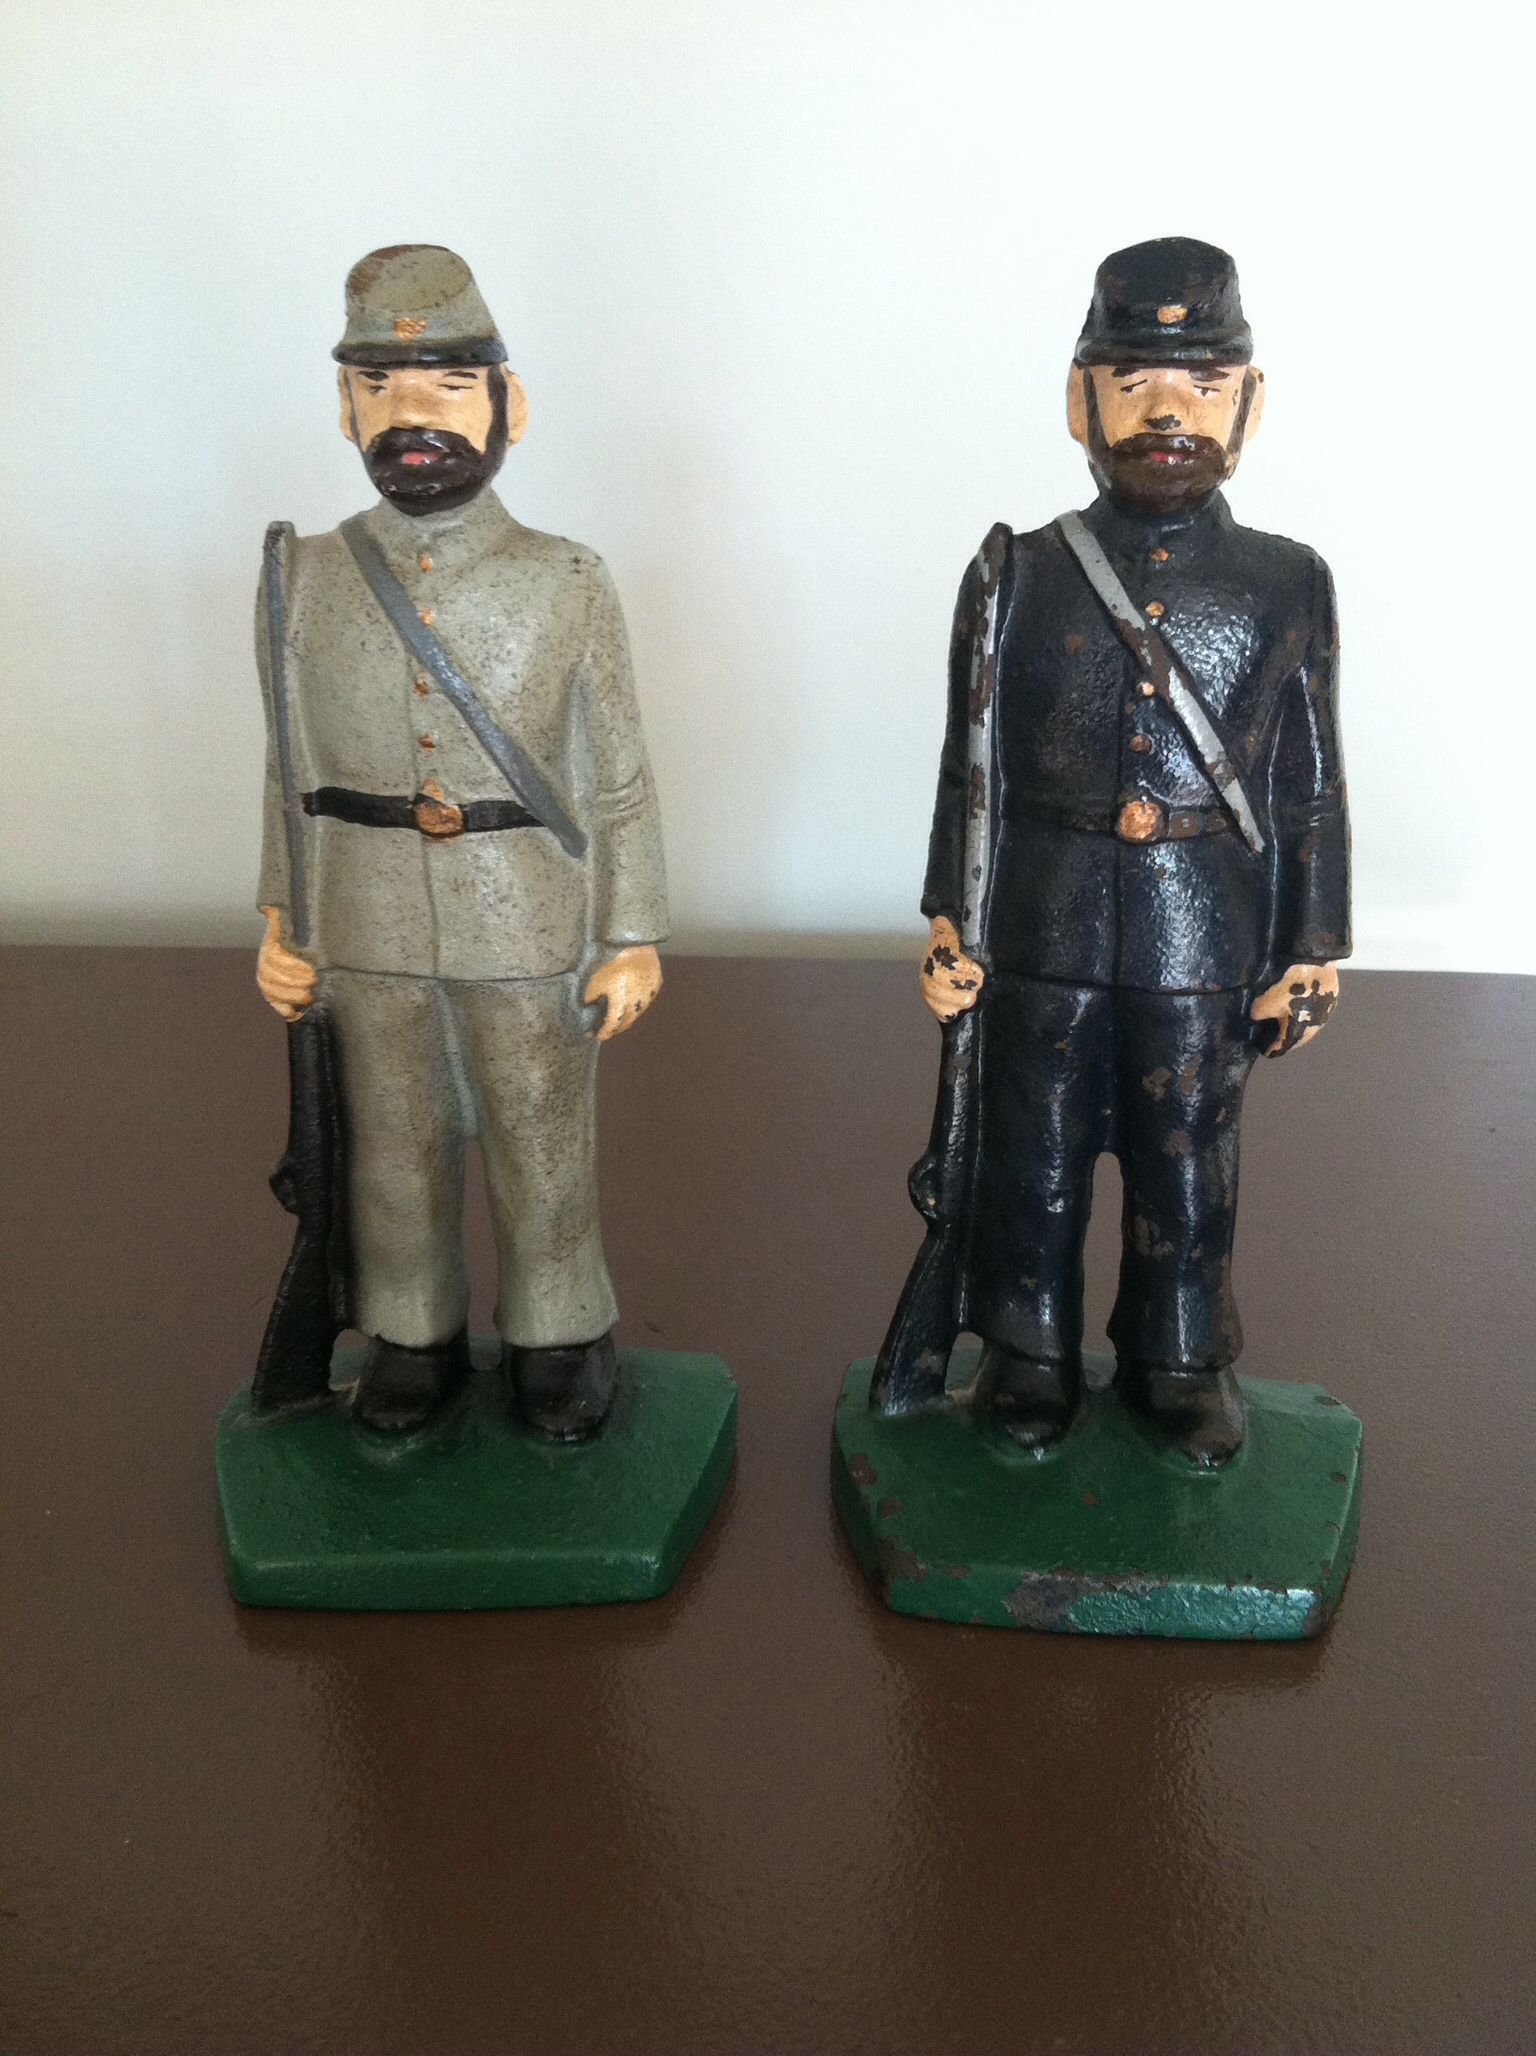 Pair Of Vintage Cast Iron Civil War Figurines The Union And Confederate Soldiers Are Hand Painted Heavy Conversation Piece Confederate Soldiers Vintage House